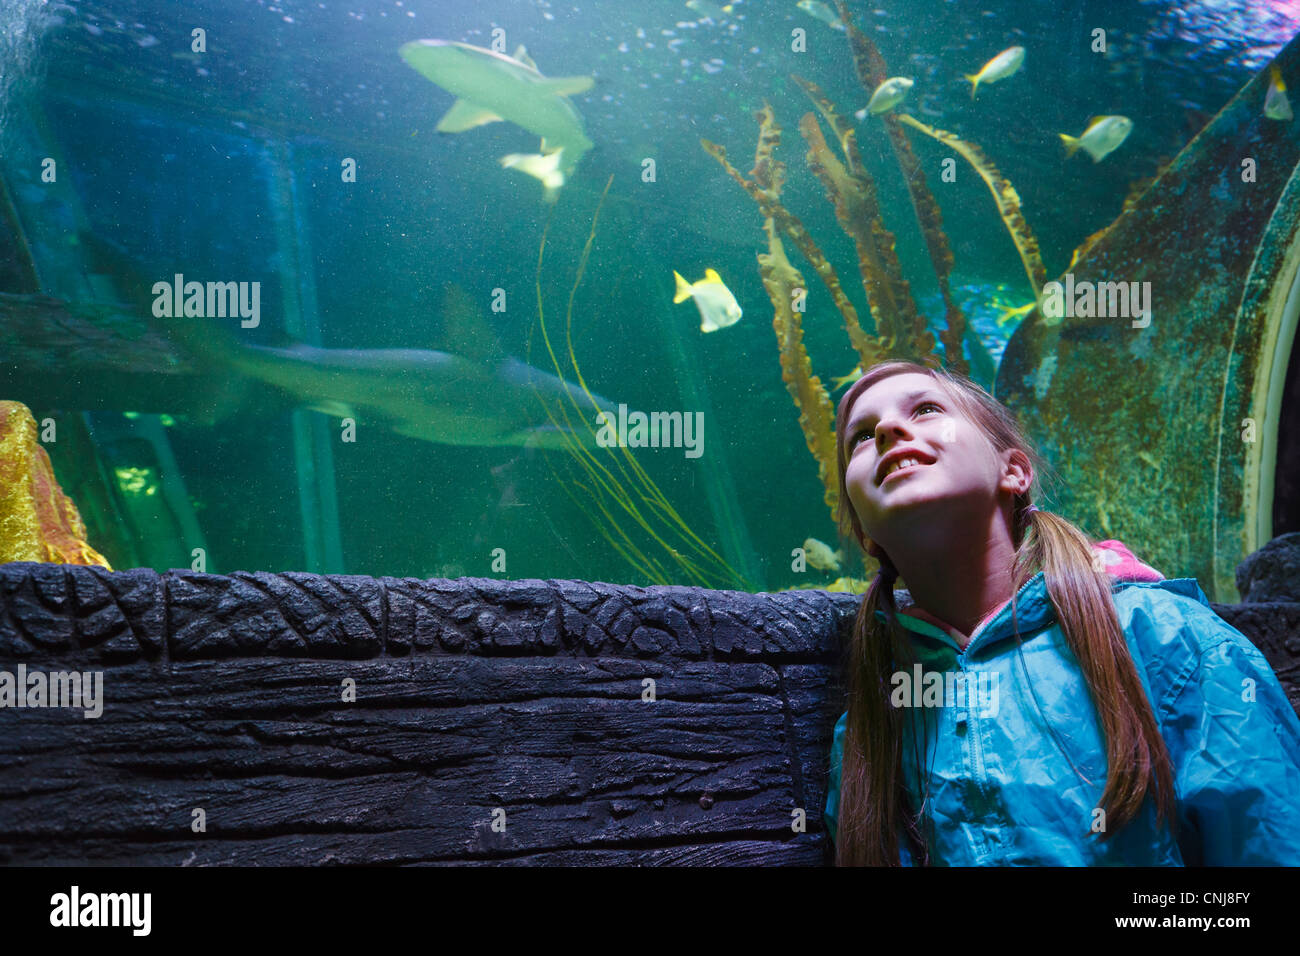 Girl looking at the fish from the 'Ocean Tunnel' at Sea Life aquarium, Blackpool. Stock Photo